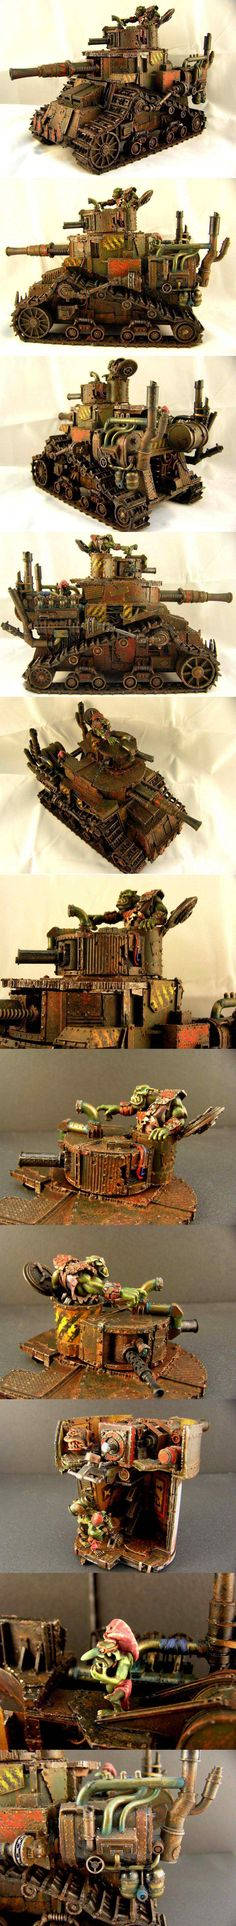 CoolMiniOrNot - ORK KIL KRUSHA TANK by Roman 2.0 - 40k